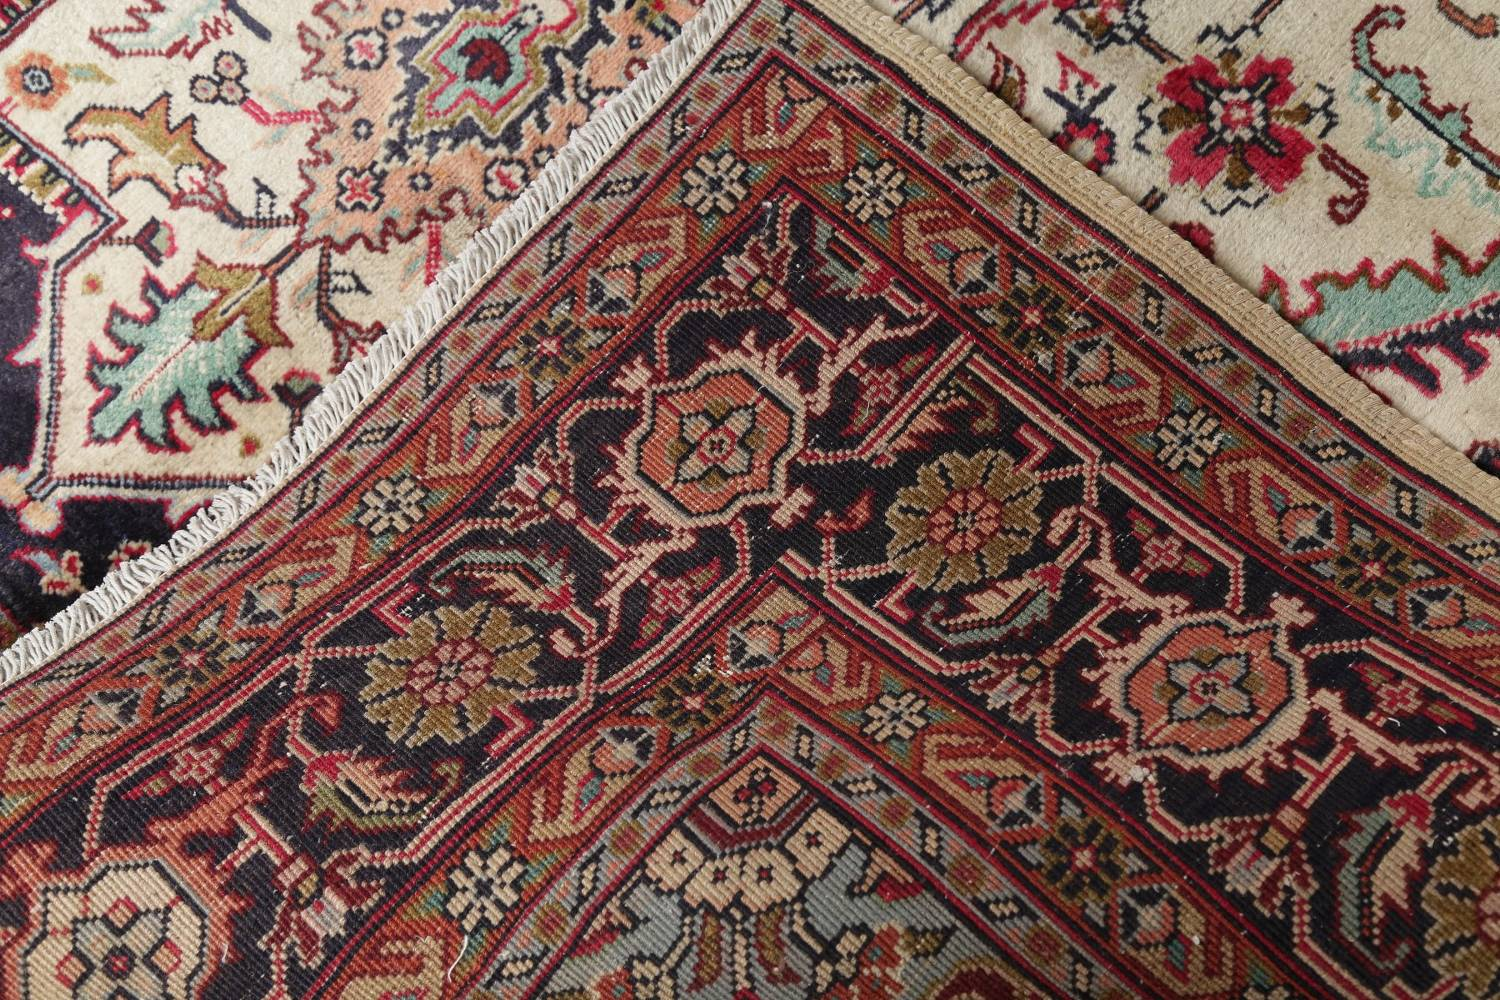 One-of-a-Kind Antique Heriz Serapi Persian Hand-Knotted 7x9 Wool Area Rug image 22